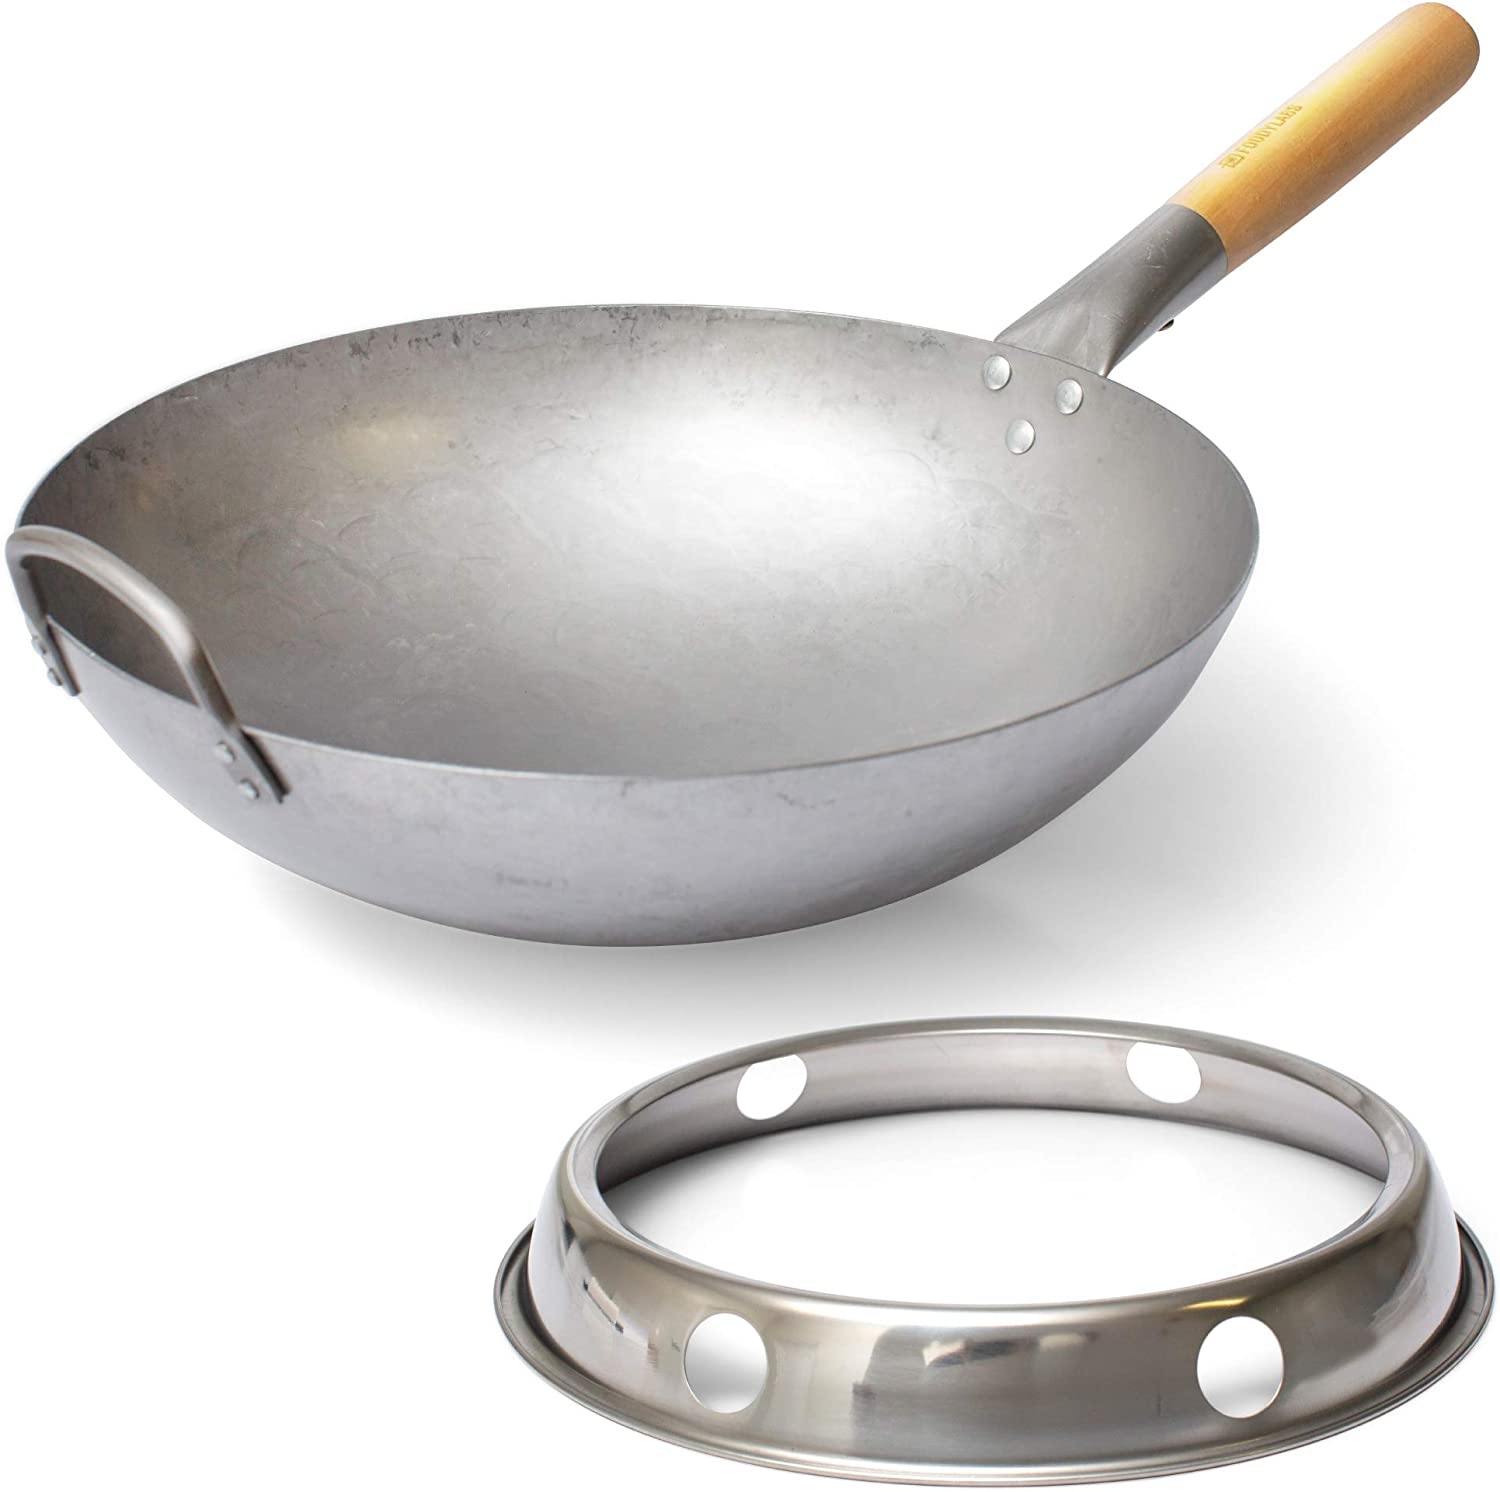 Wok Pan with Ring – Woks and Stir Fry Pans for Home and Professional Cooking – Authentic Hand hammered Carbon Steel Wok with Wooden Handle for Stir Fry Cooking - The Chinese Wok choice of Chefs